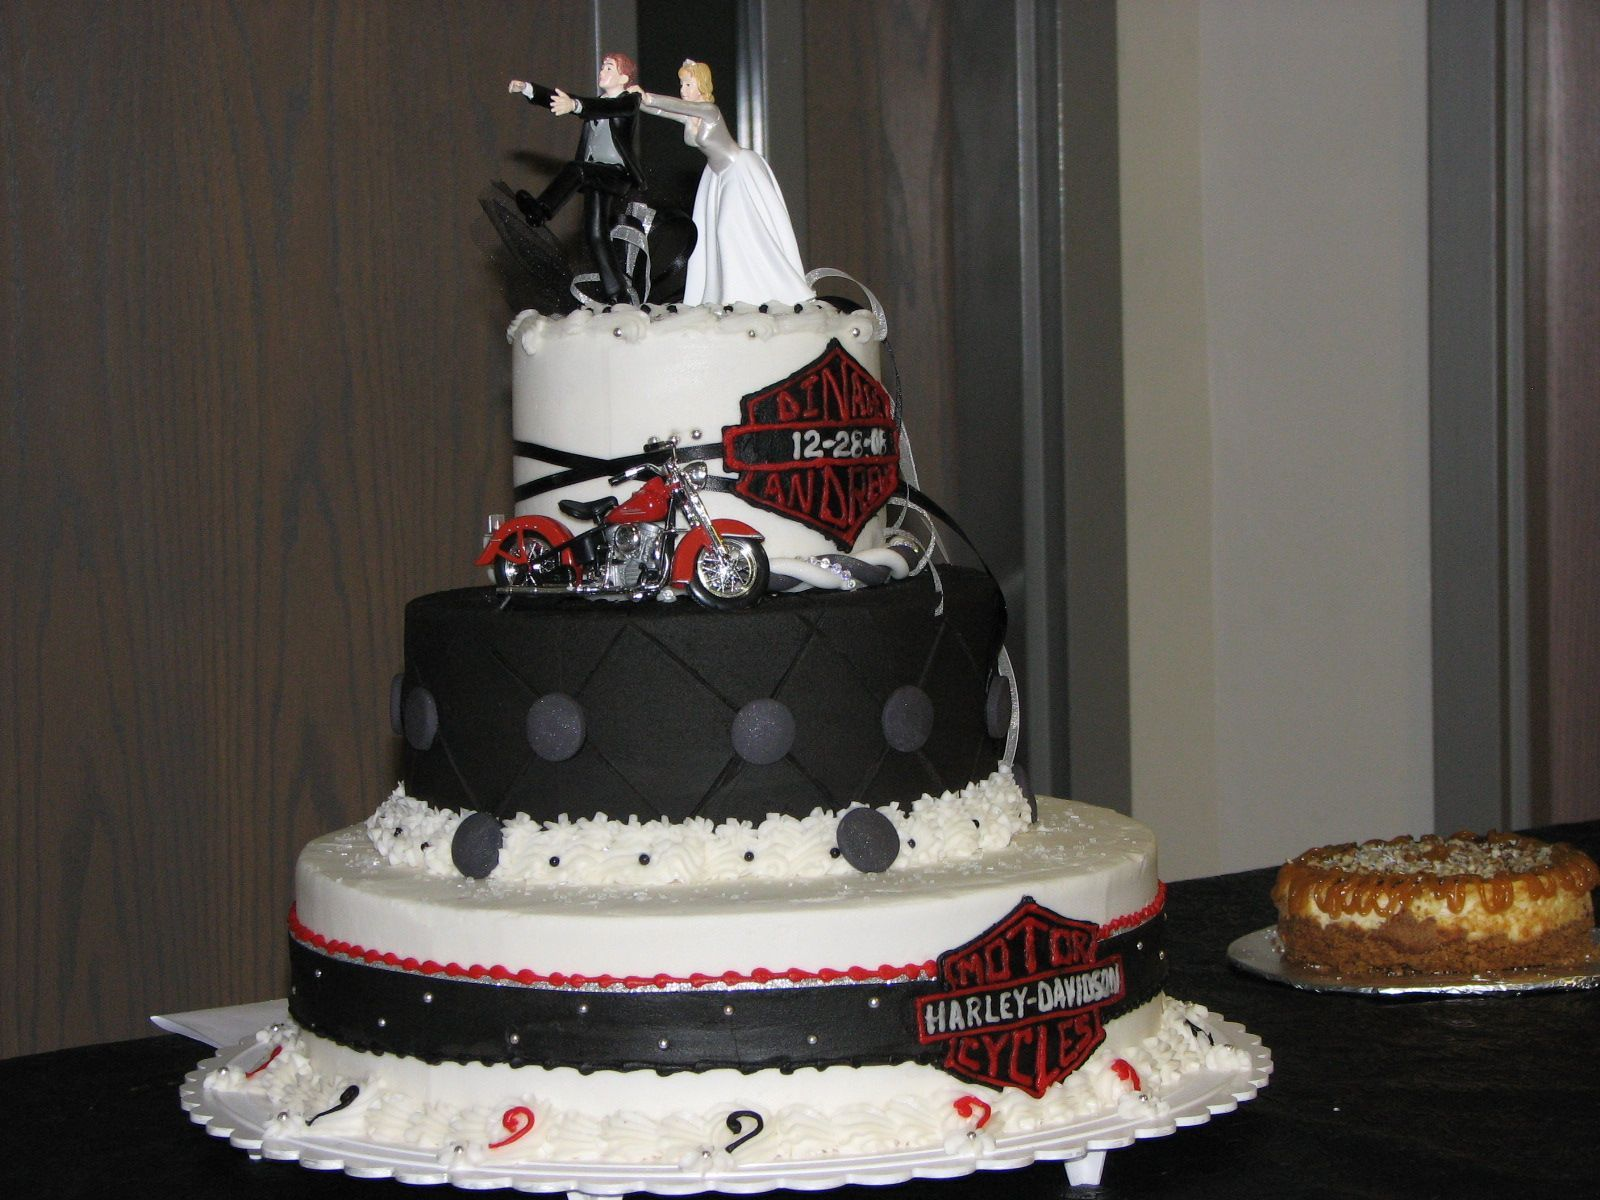 Harley Davidson Wedding Cake Toppers Harley Wedding De wedding